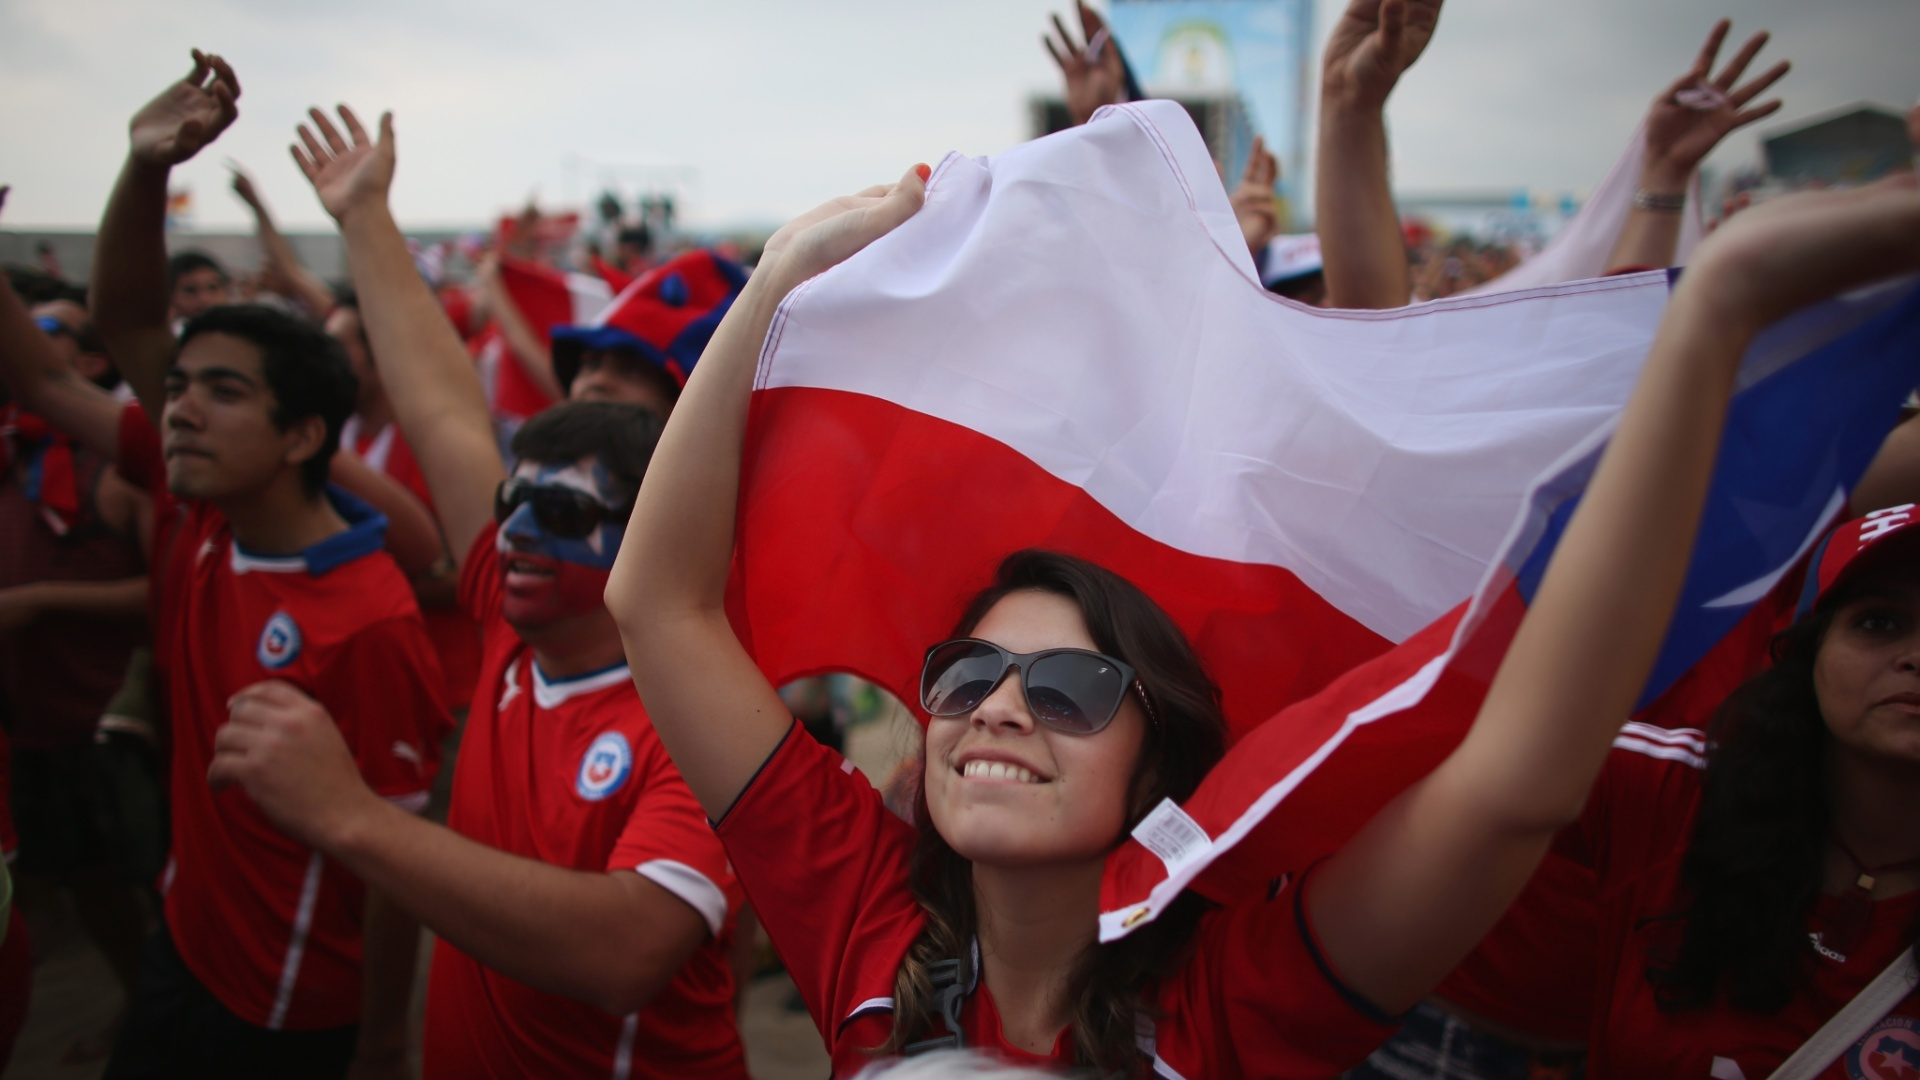 Torcedora do Chile curte a Fan Fest em Copacabana